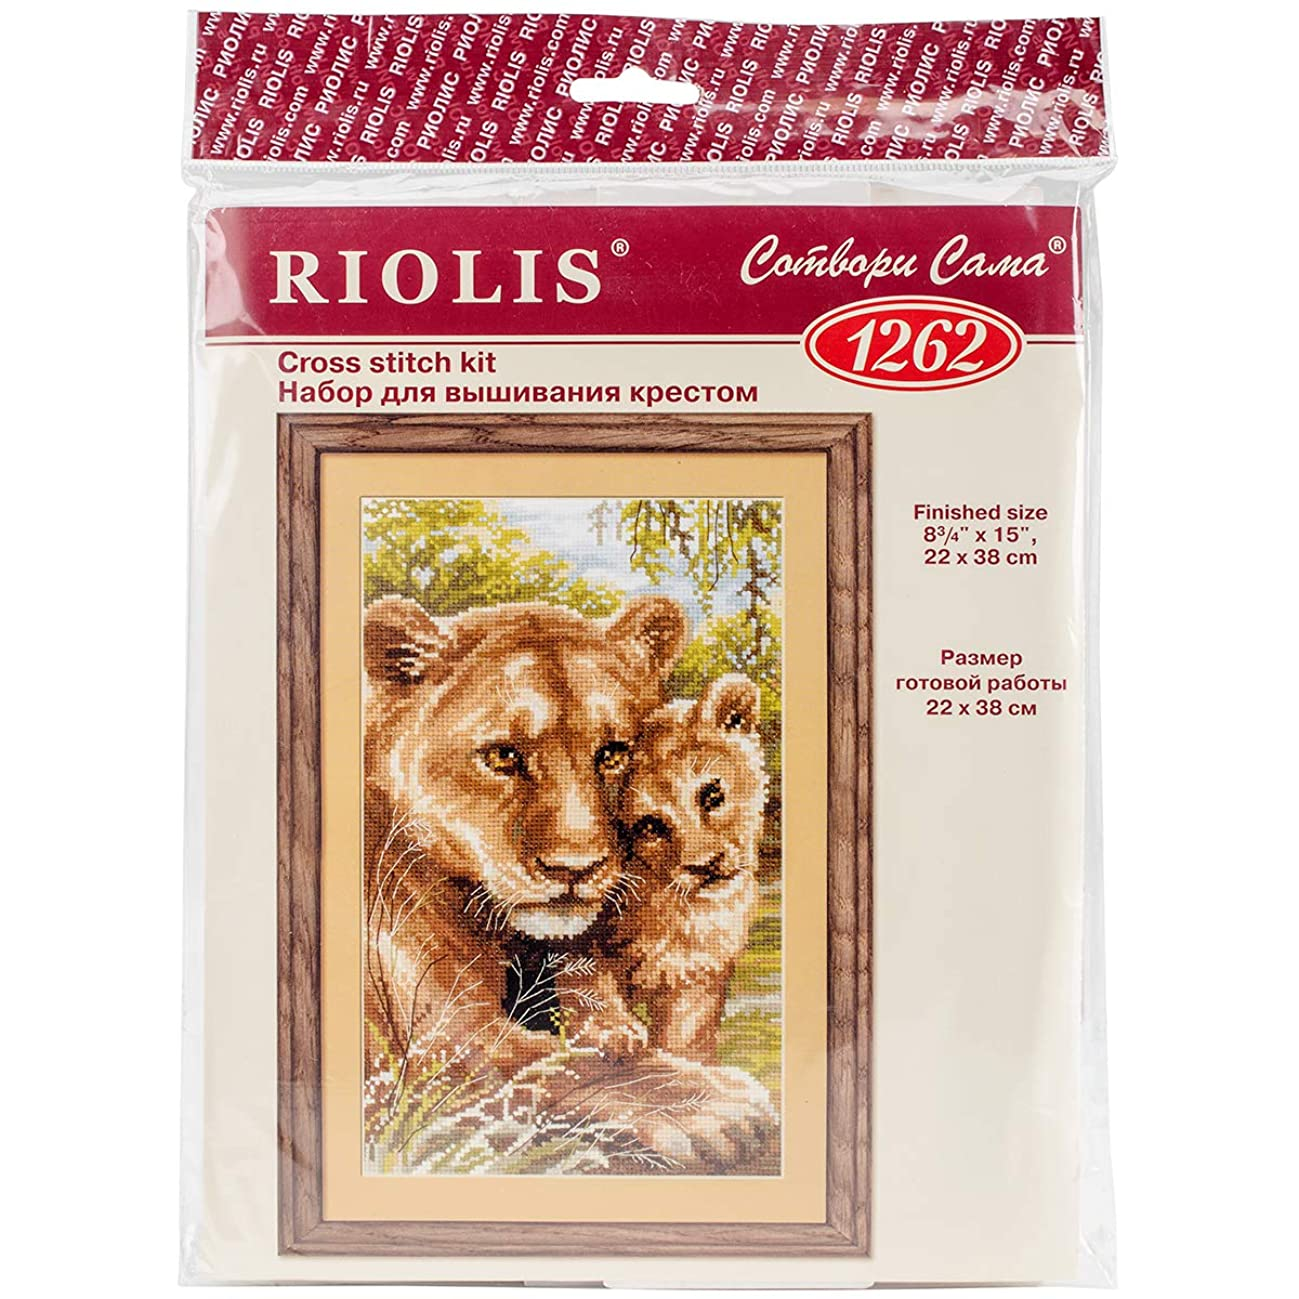 RIOLIS R1262 Counted Cross Stitch Kit 8.75